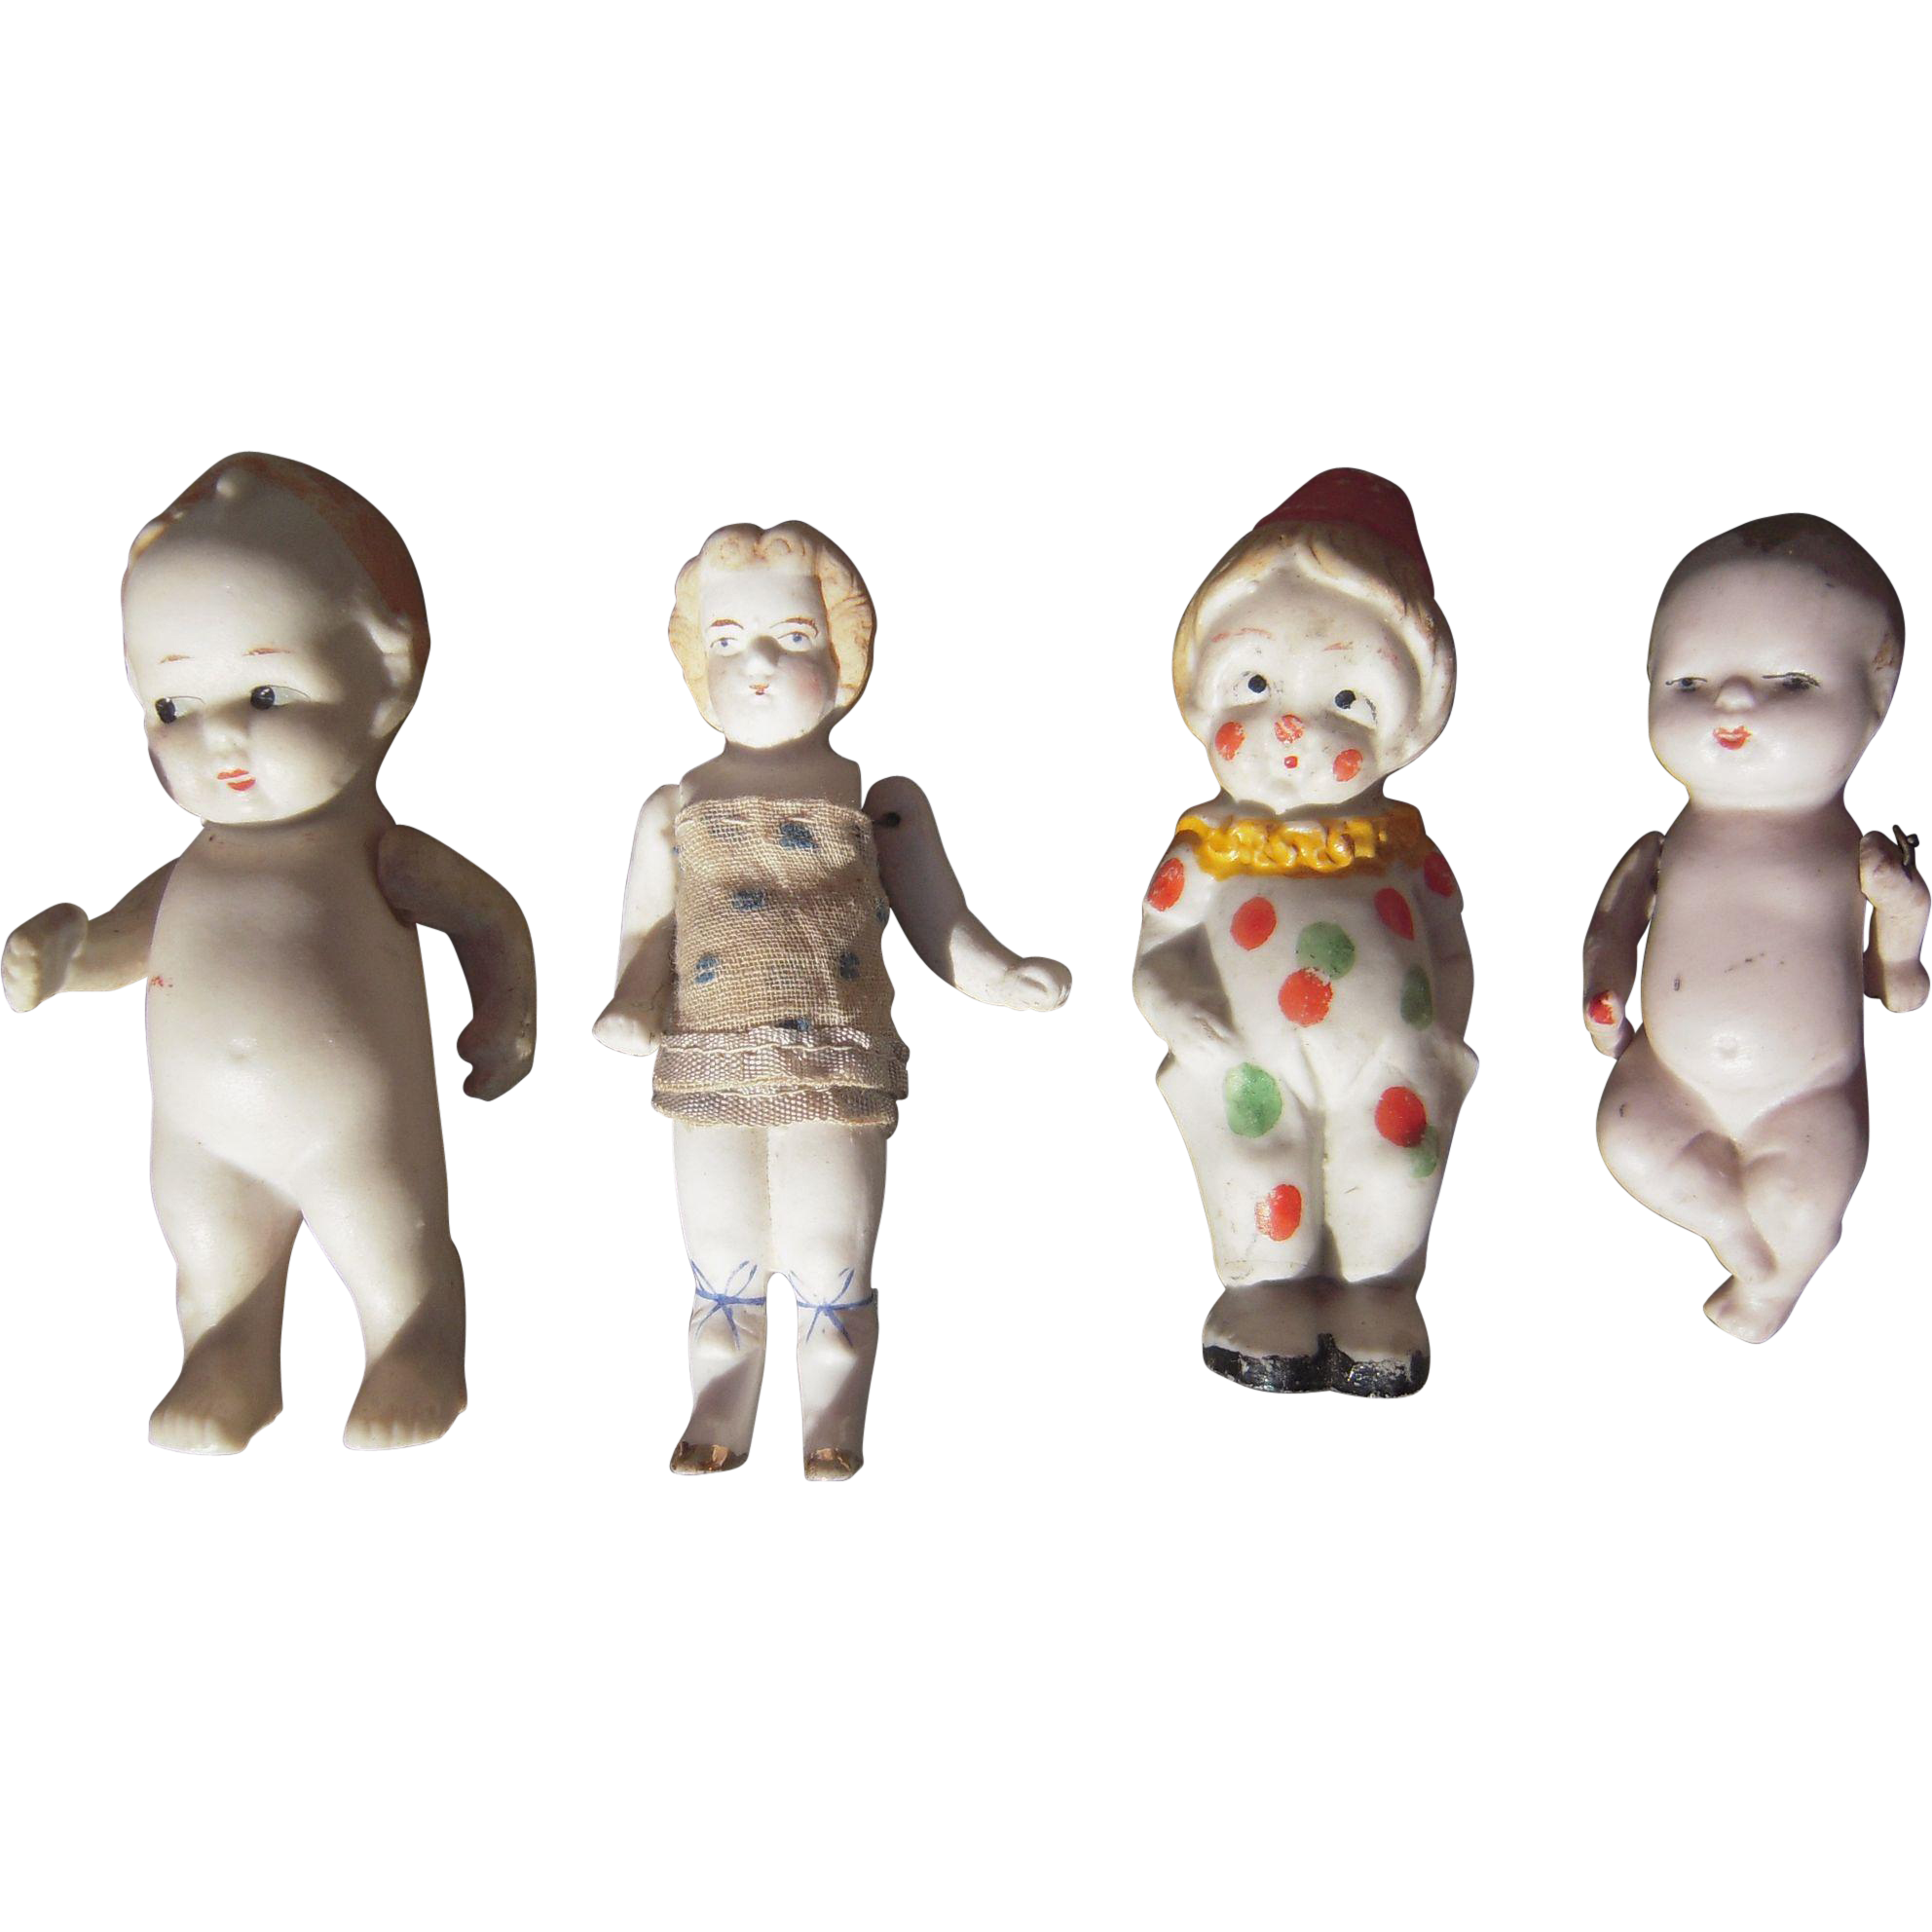 Lot Of 4 Early 20th Century Bisque Dolls Bisque Doll Vintage Dolls Dolls